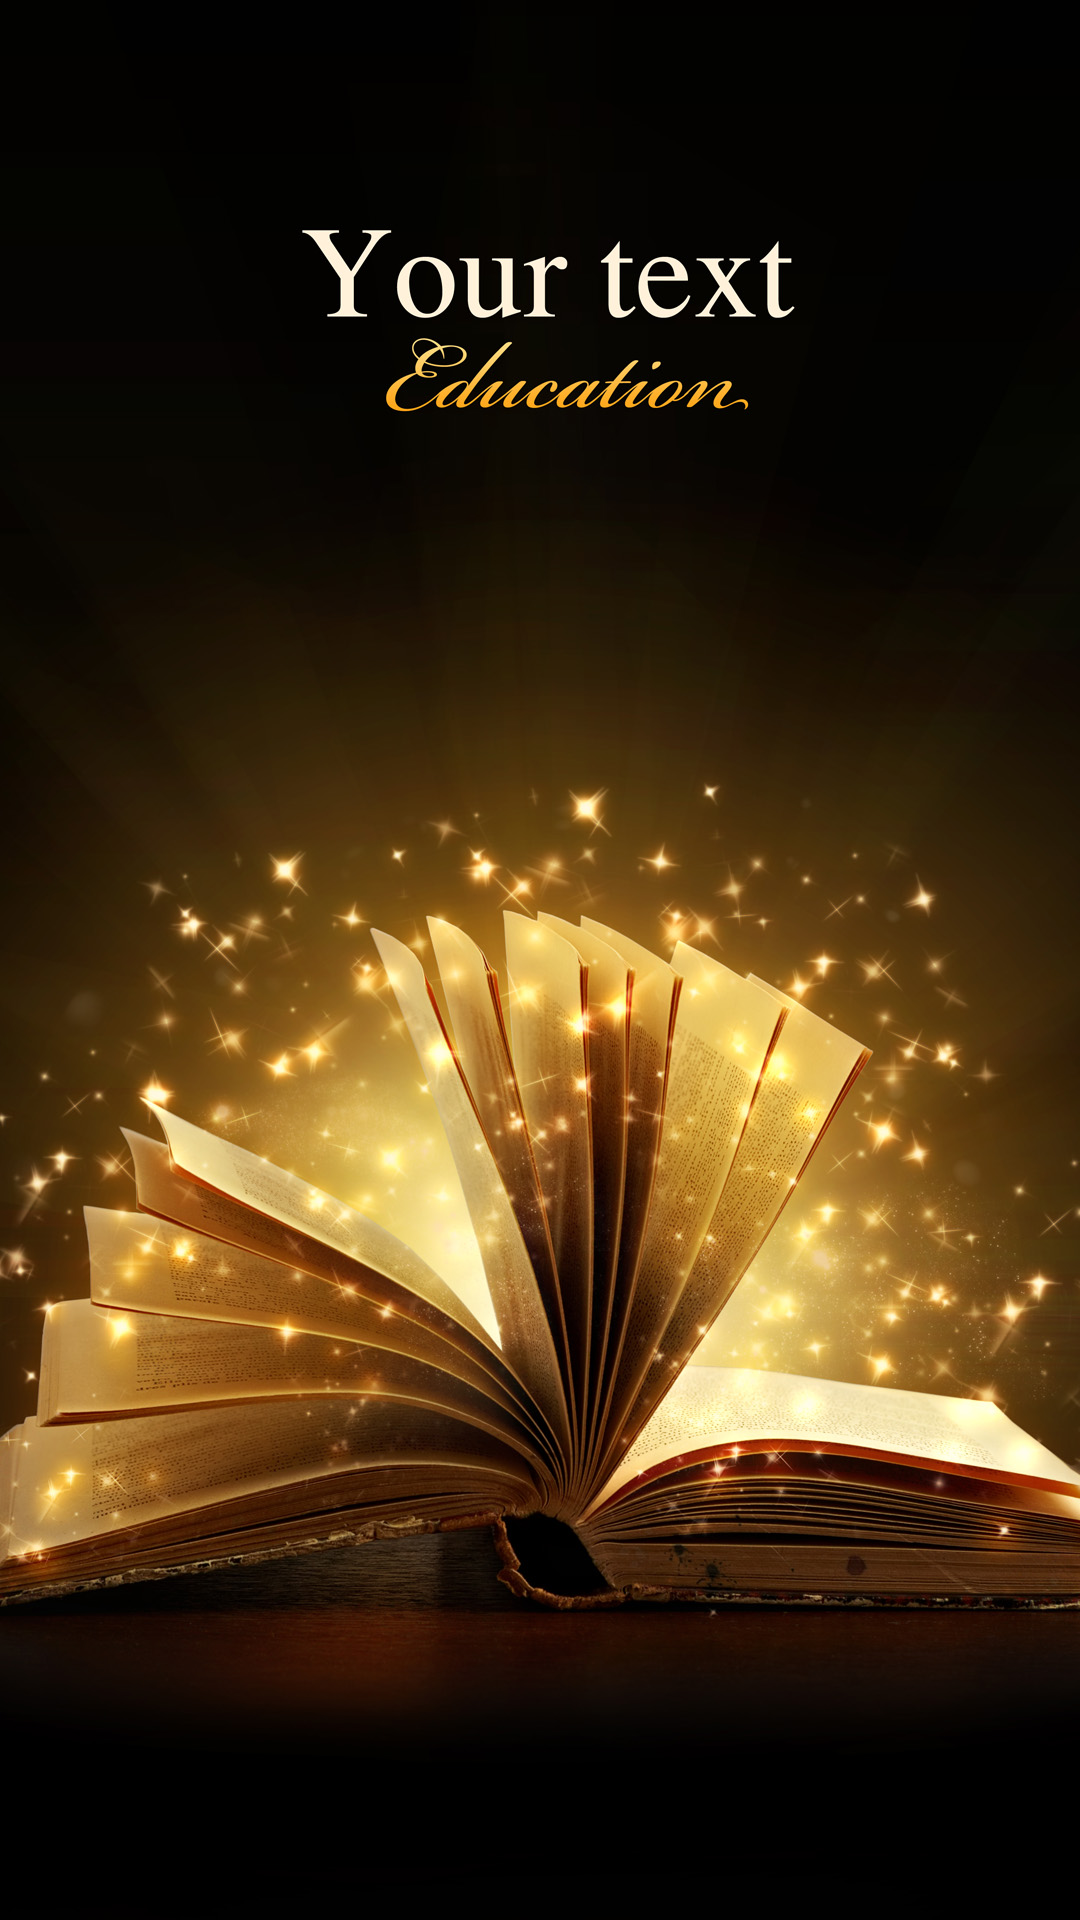 Creative magic books android wallpaper android hd wallpapers voltagebd Choice Image